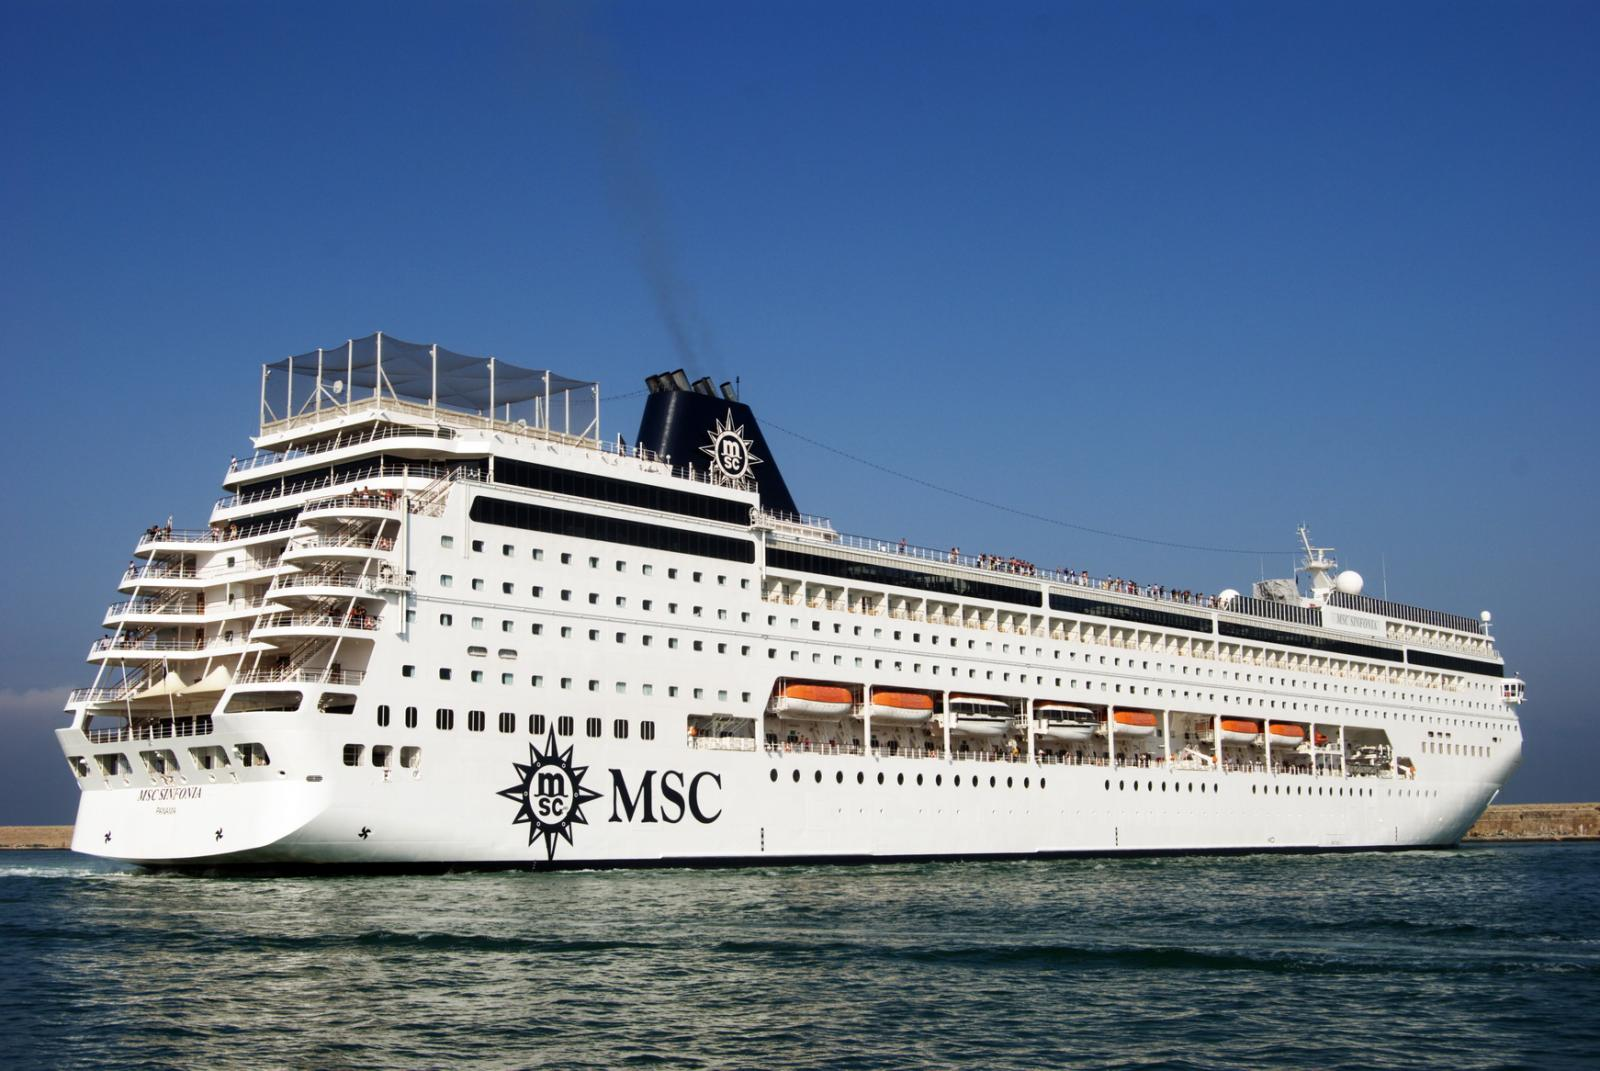 Msc Sinfonia 2019 Cruise Itinerary And Sailing Calendar